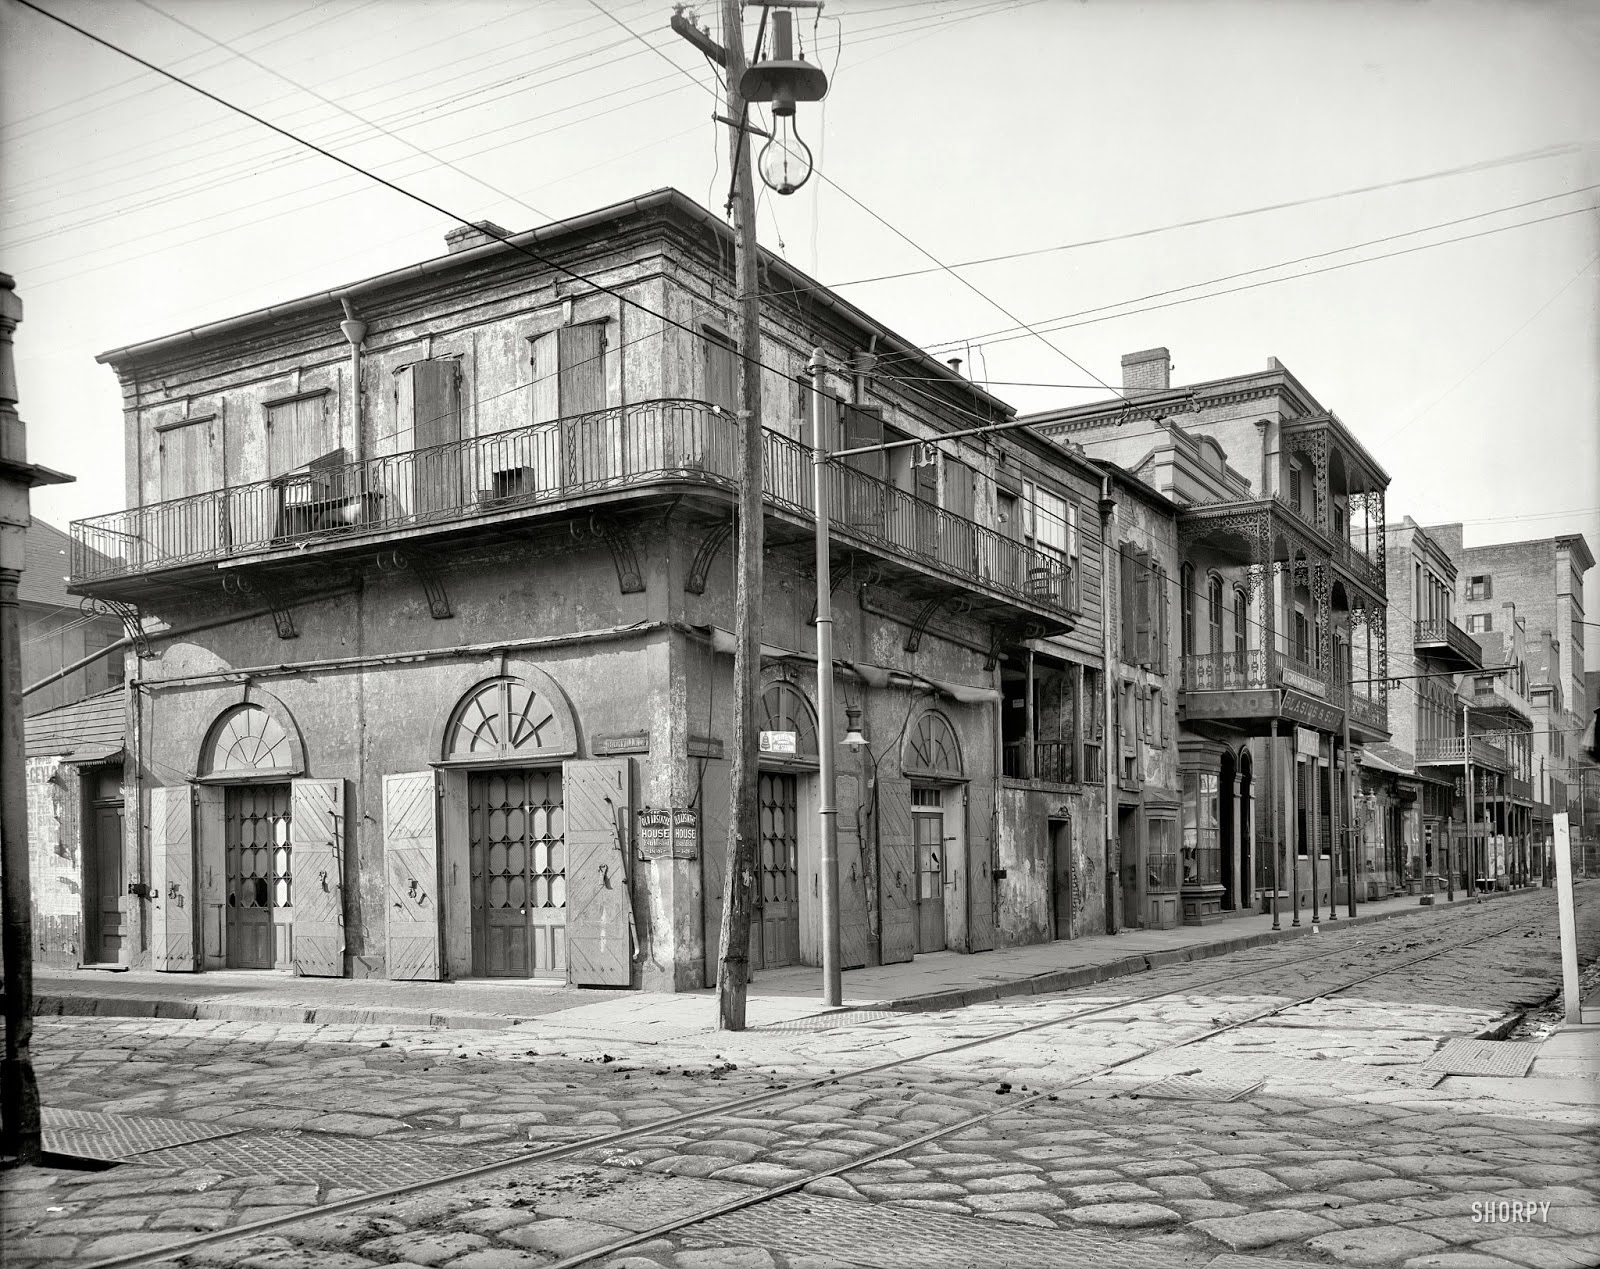 amazing vintage photos of new orleans from the early 20th century vintage everyday. Black Bedroom Furniture Sets. Home Design Ideas